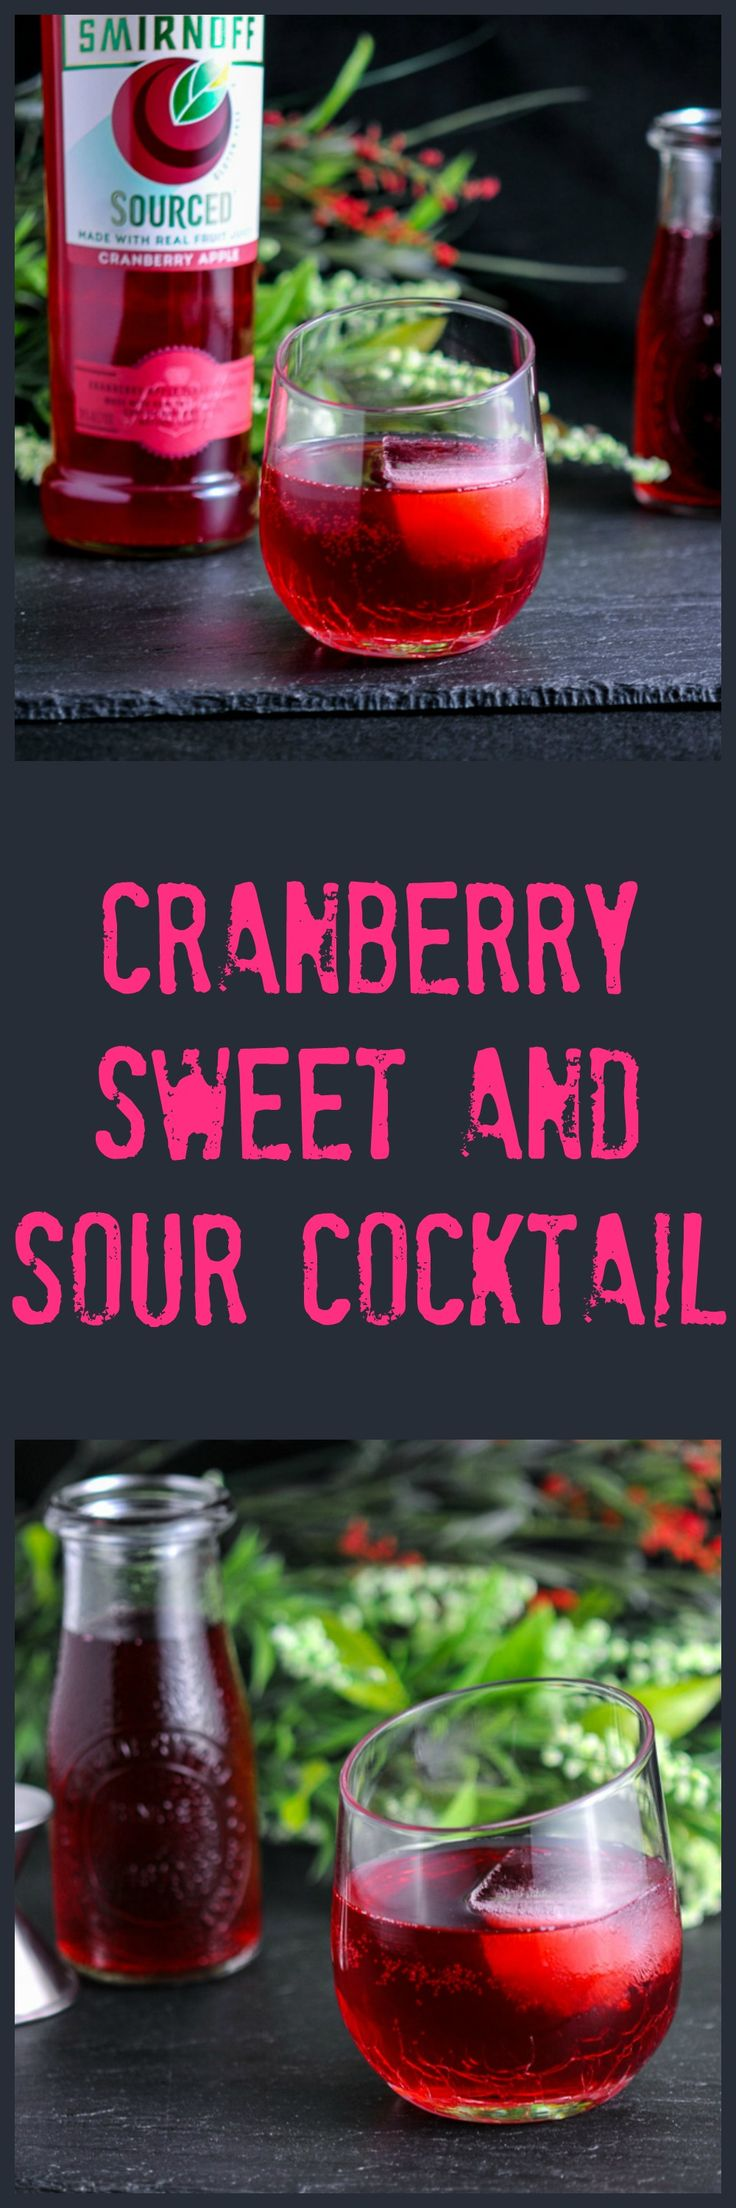 Cranberry Sweet and Sour Cocktail, A combo of Smirnoff Sourced Cranberry Apple vodka, bitters, cranberry syrup and club soda! @Smirnoff #sponsored